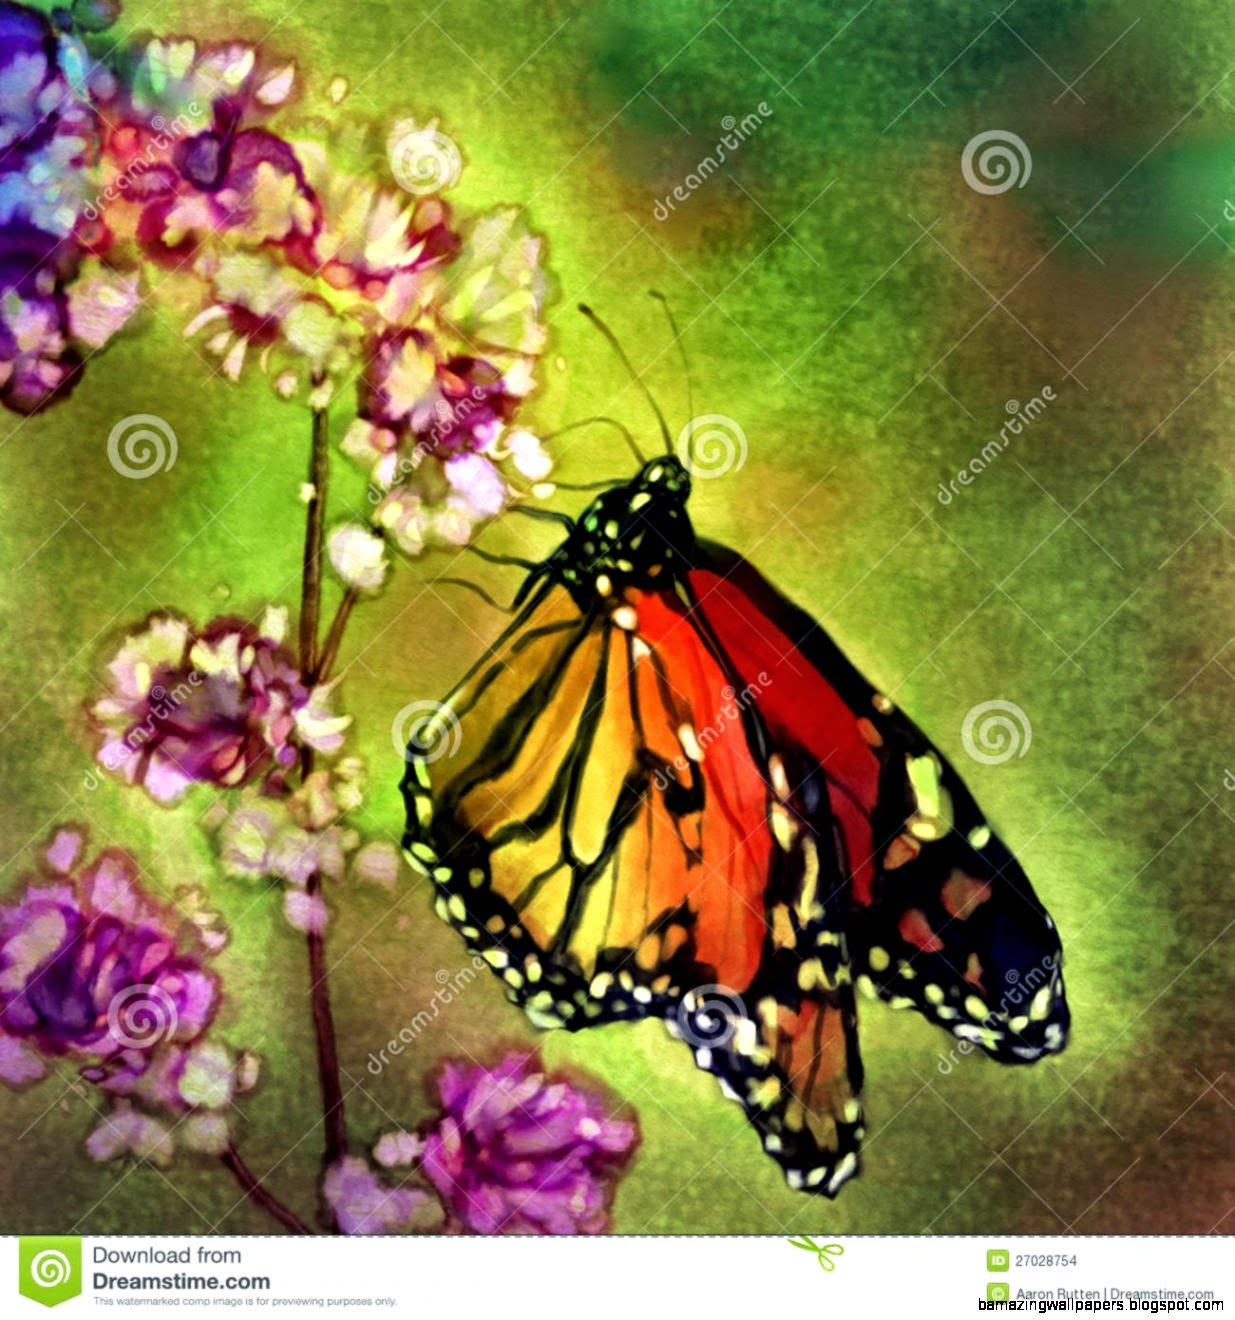 Flowers And Butterflies Paintings | Amazing Wallpapers